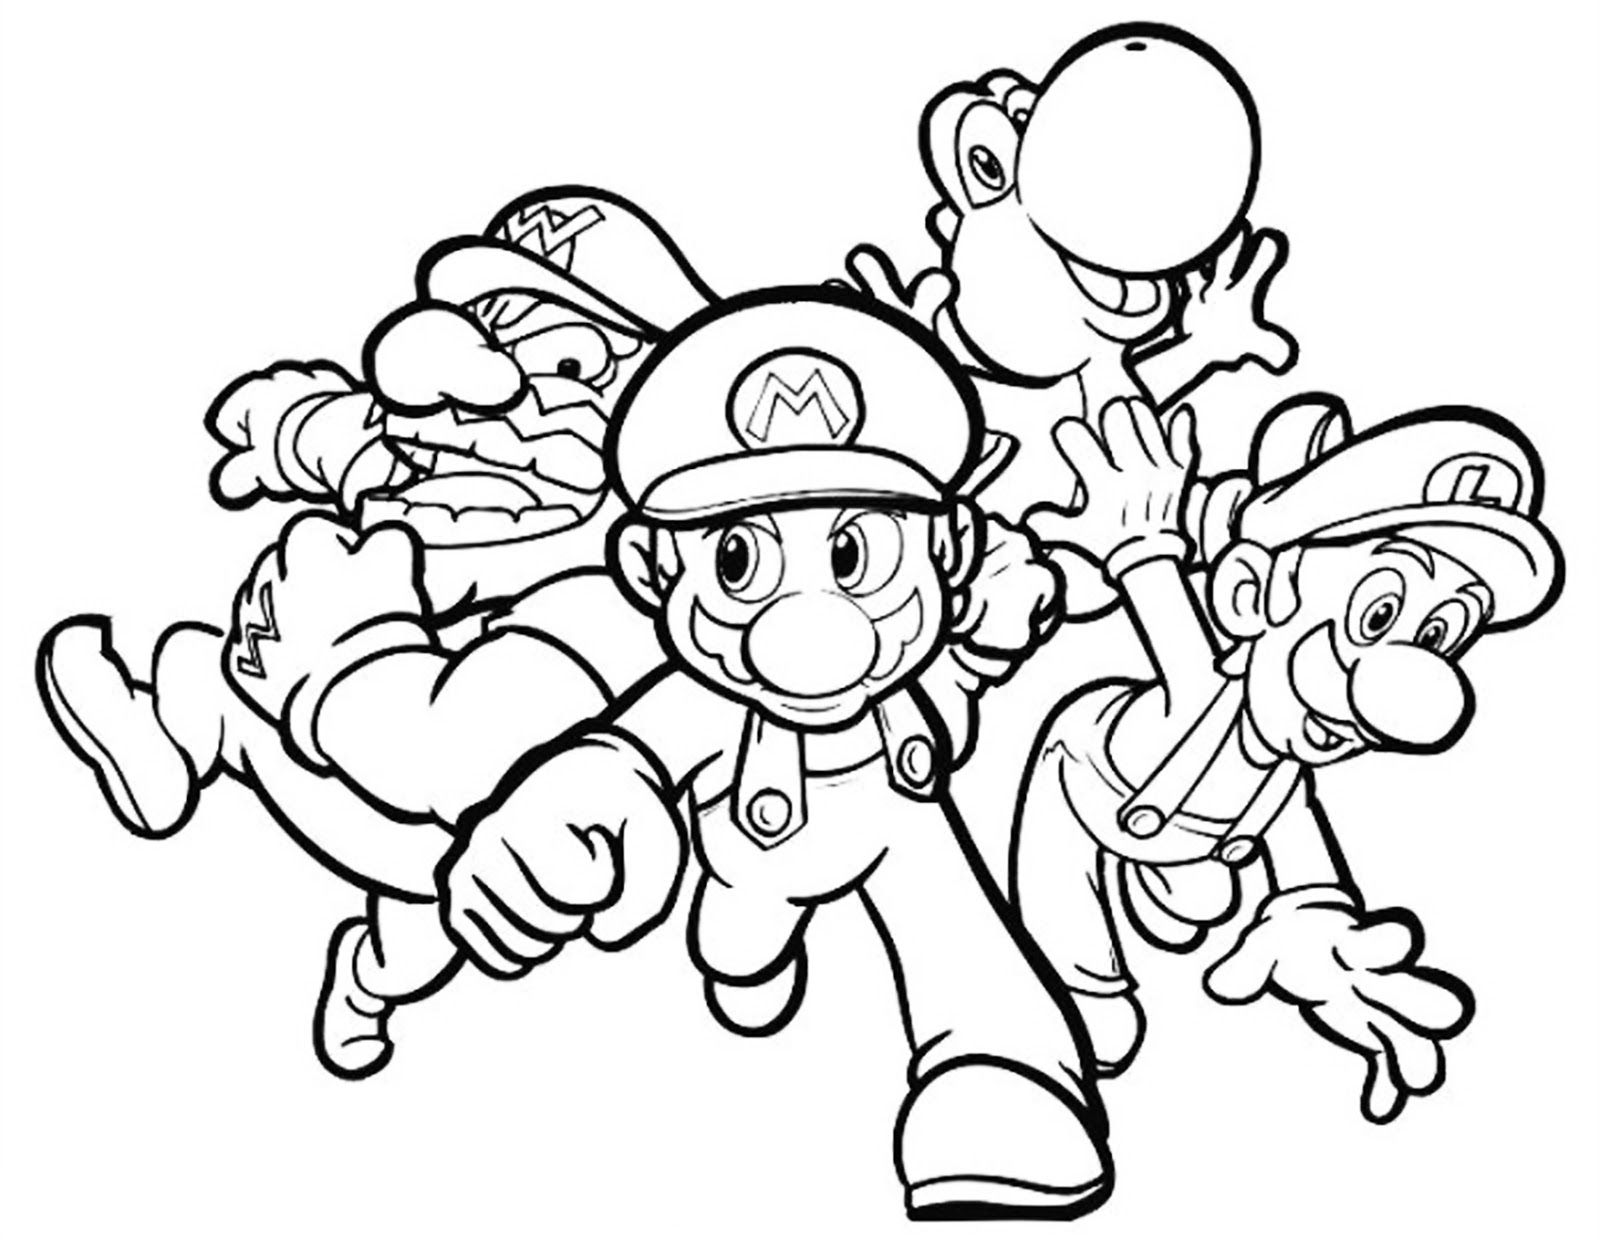 12 30 15 4 Kids Coloring Pages Pinterest Video Game News